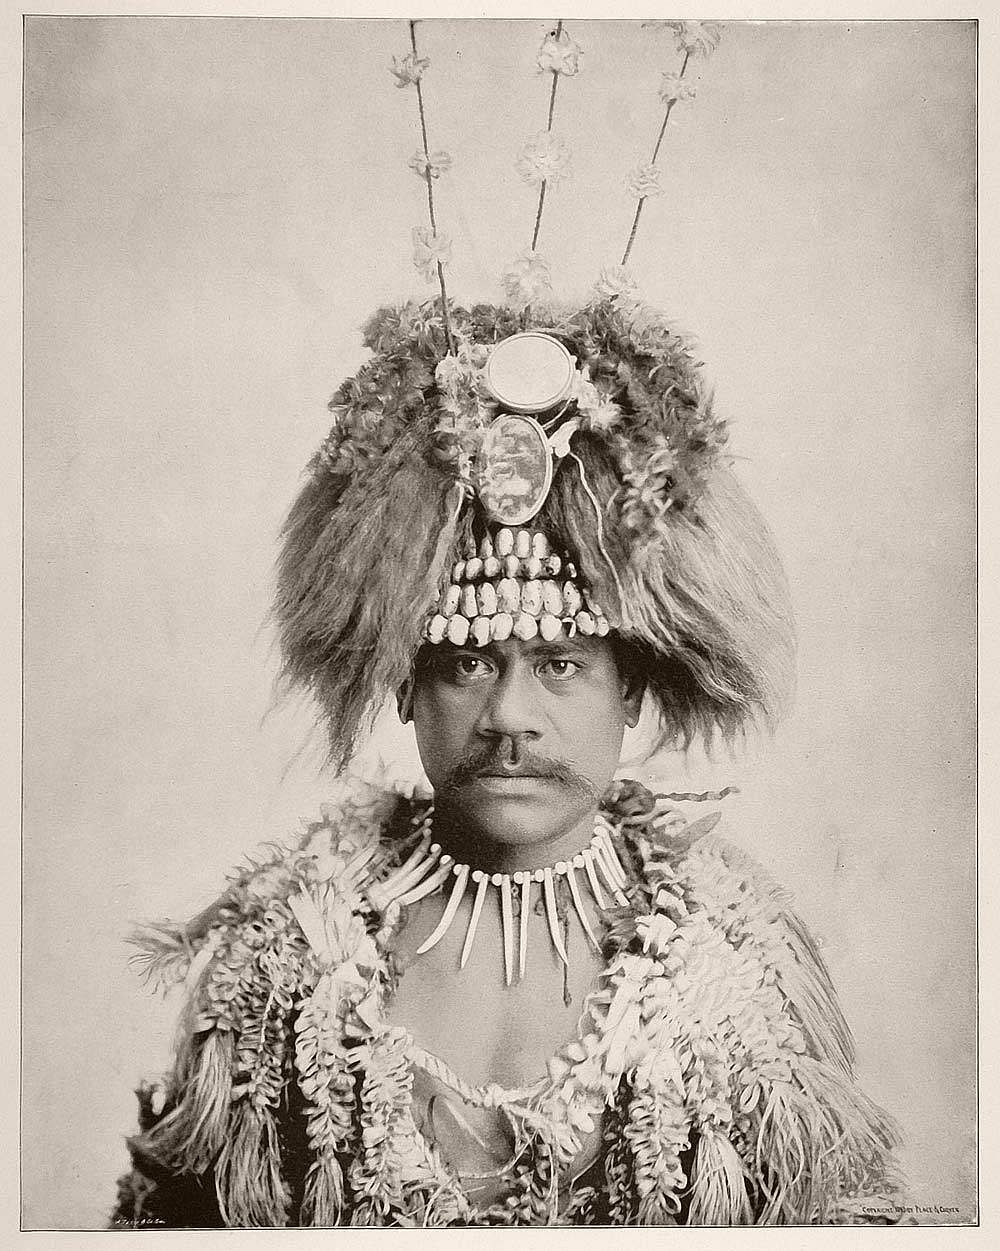 William, a Samoan man, in his traditional costume and elaborate headdress.